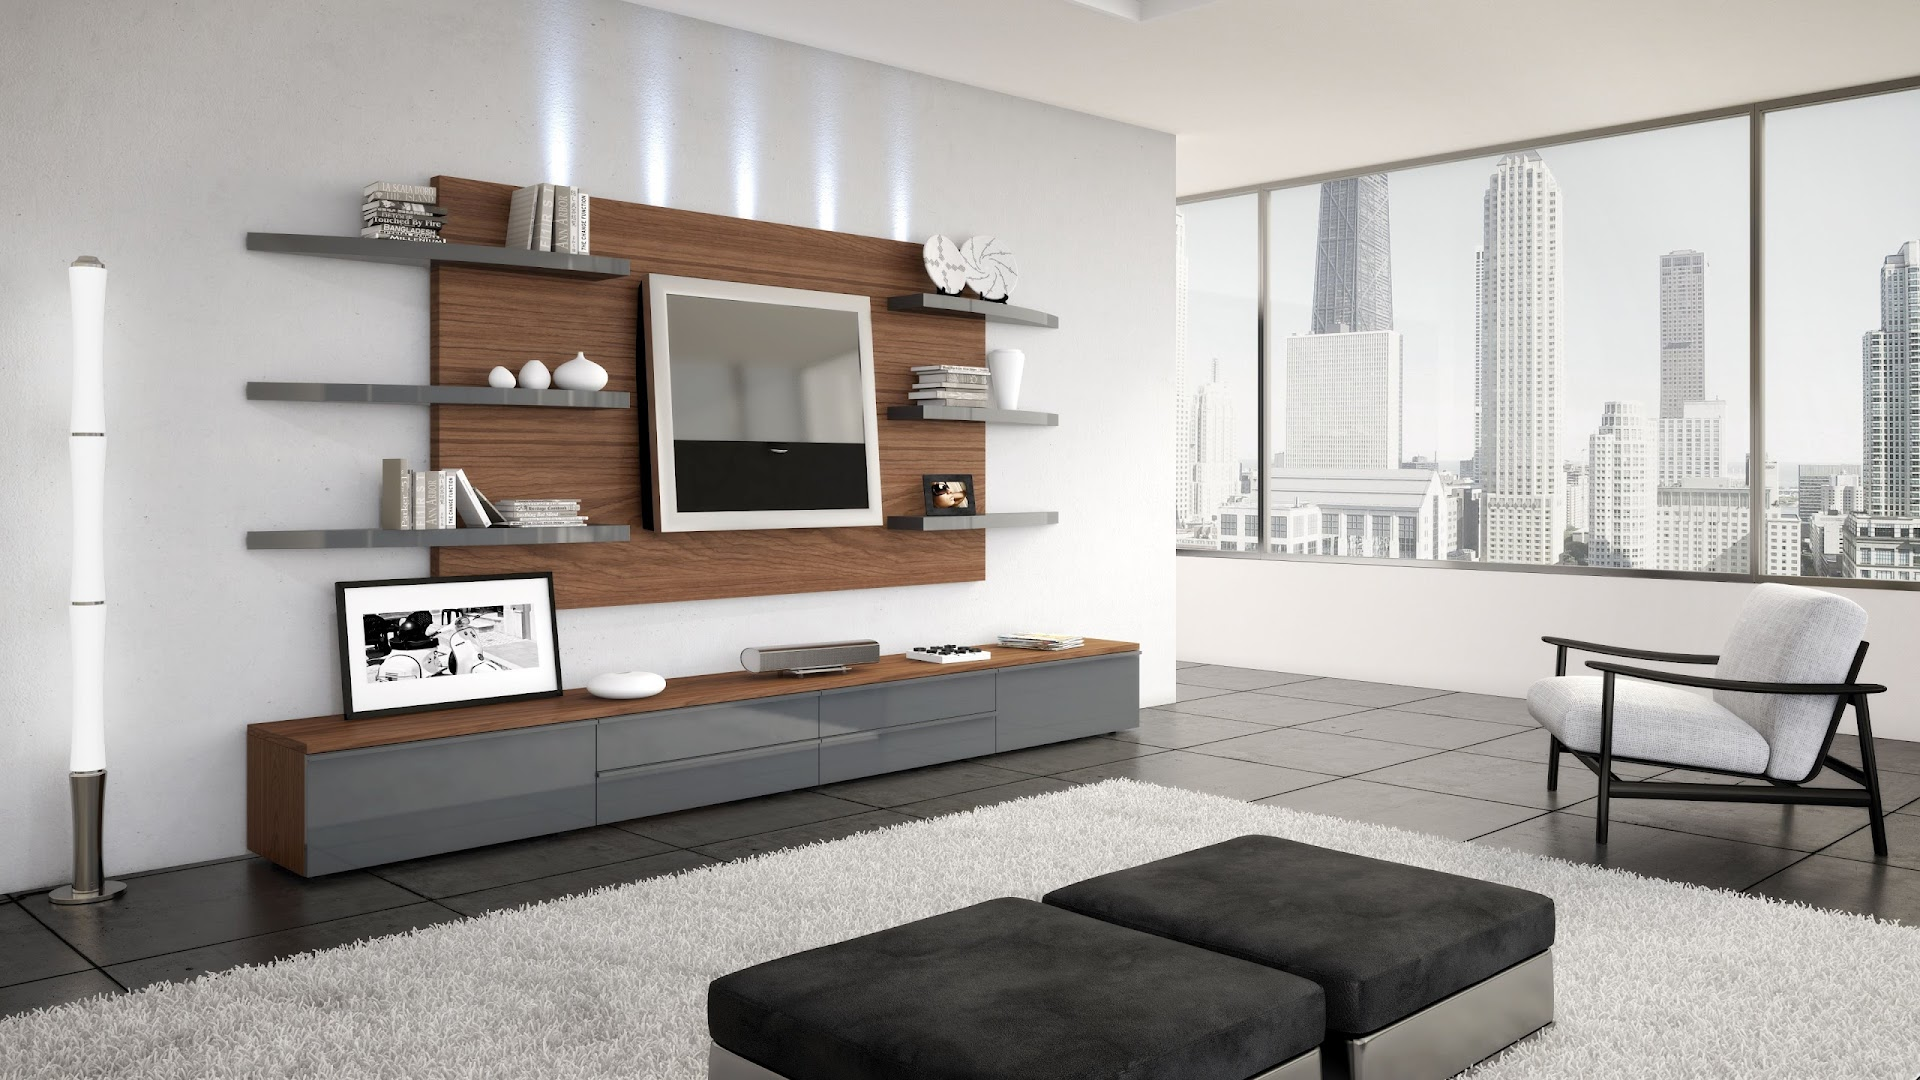 living room design hd wallpapers 183 4k